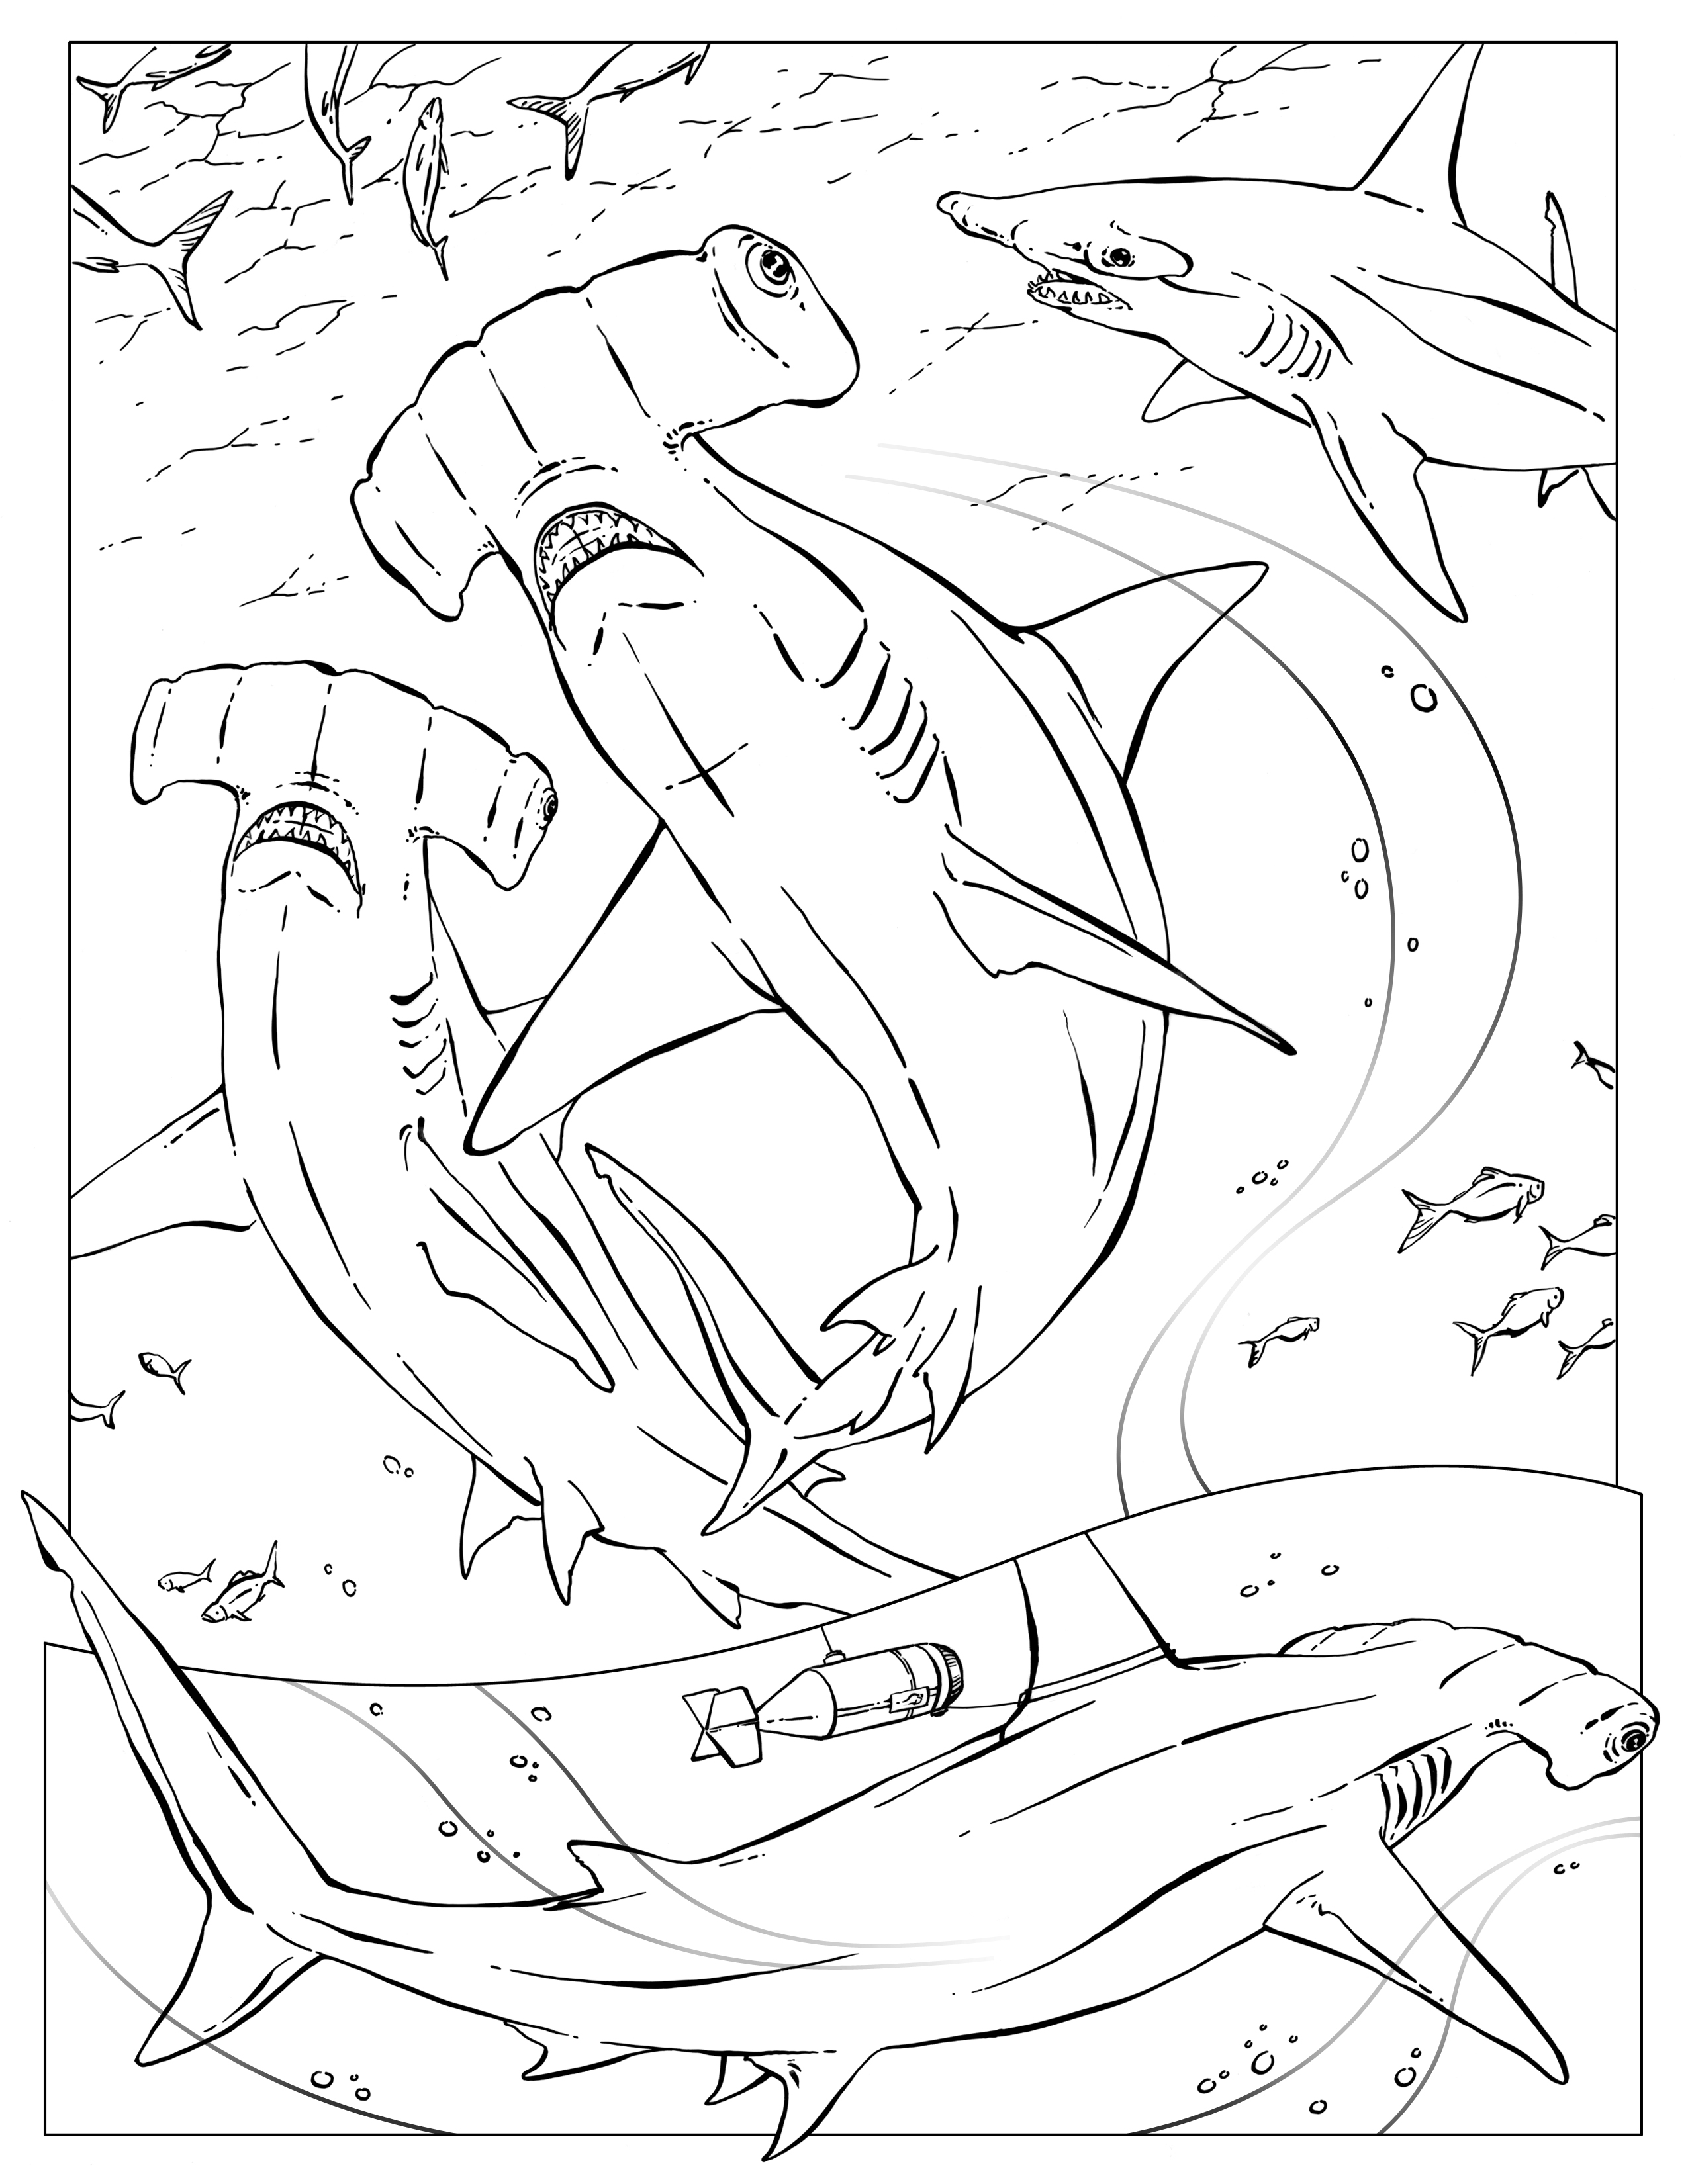 coloring pages u2013 wildlife research u0026 conservation